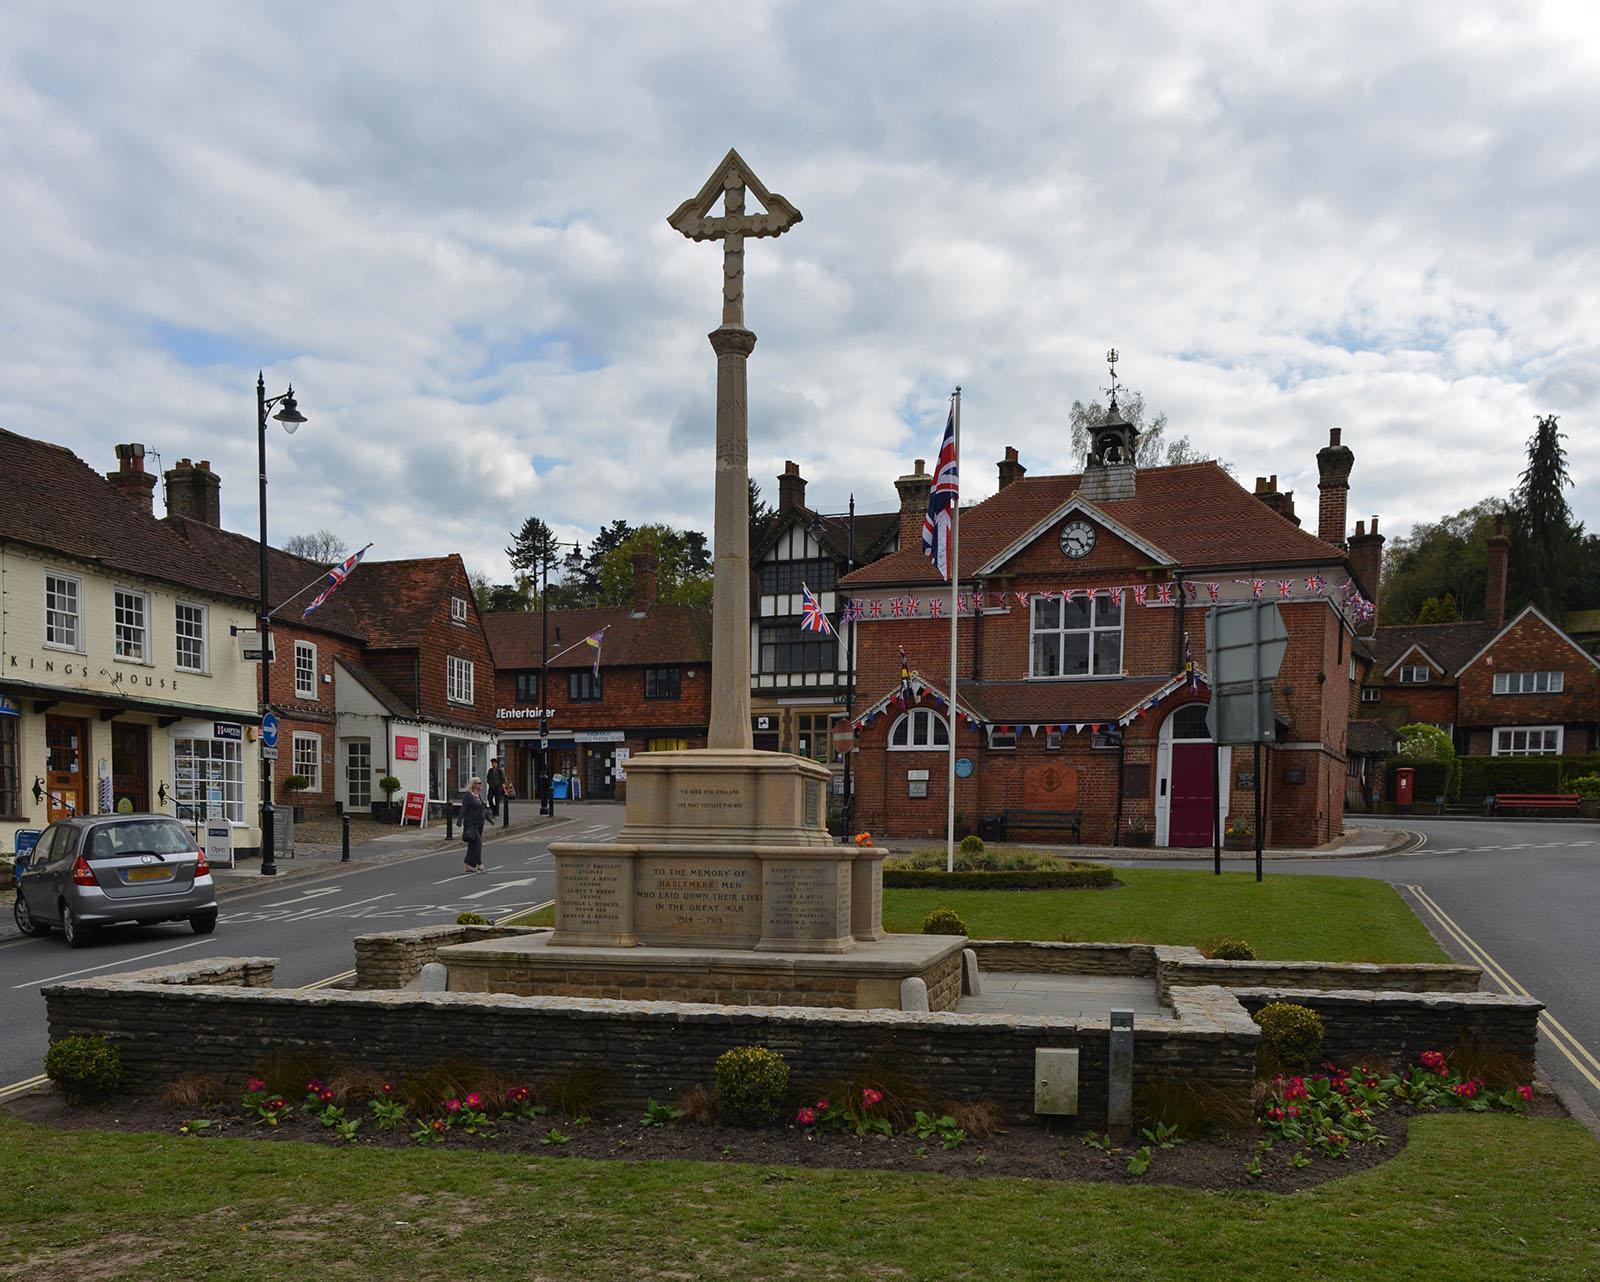 Haslemere town hall and war memorial.